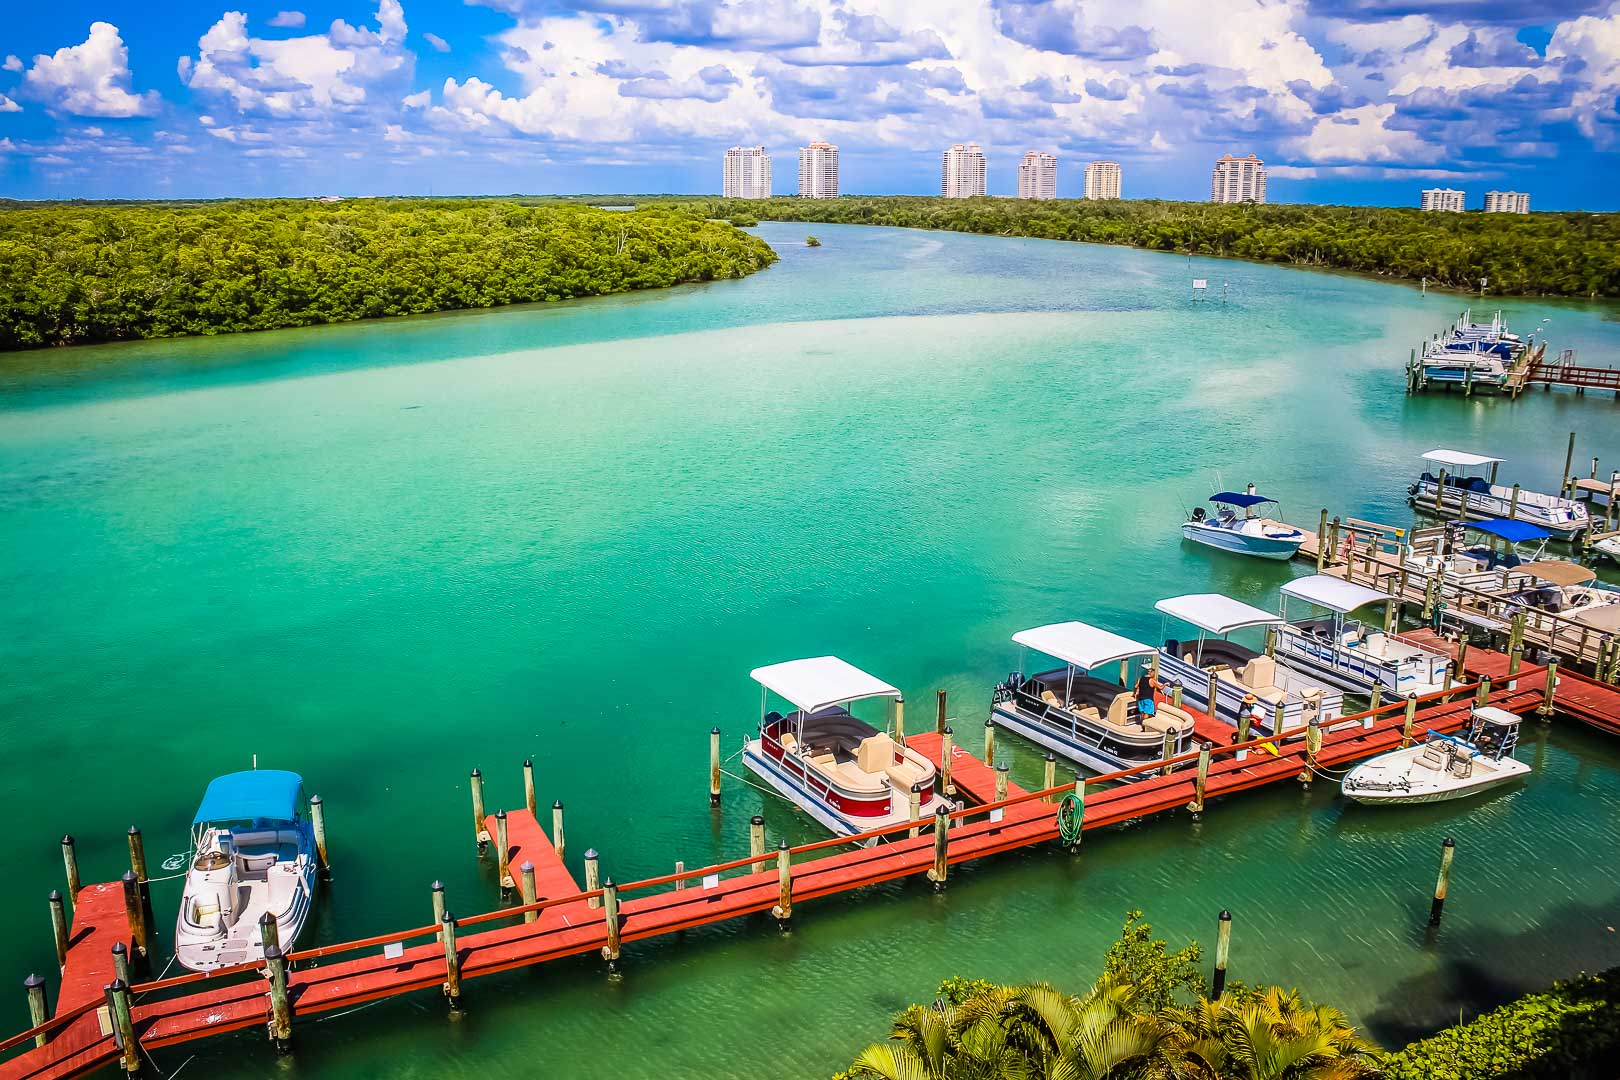 A scenic view of the boat dock at VRI's Bonita Resort and Club in Florida.